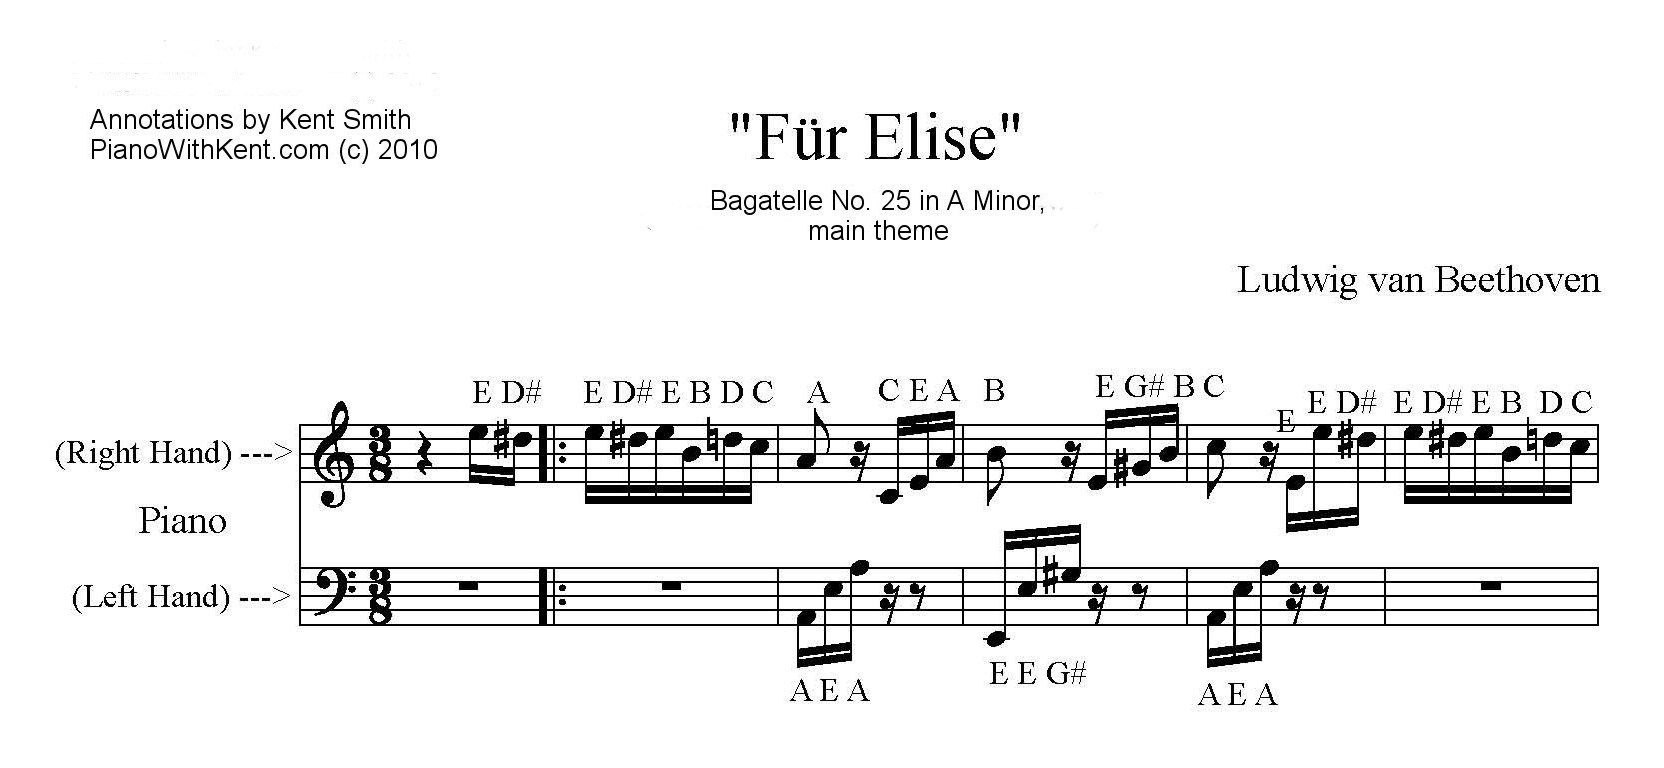 Piano With Kentfur Elise And Other Easy Sheet Music With Letter